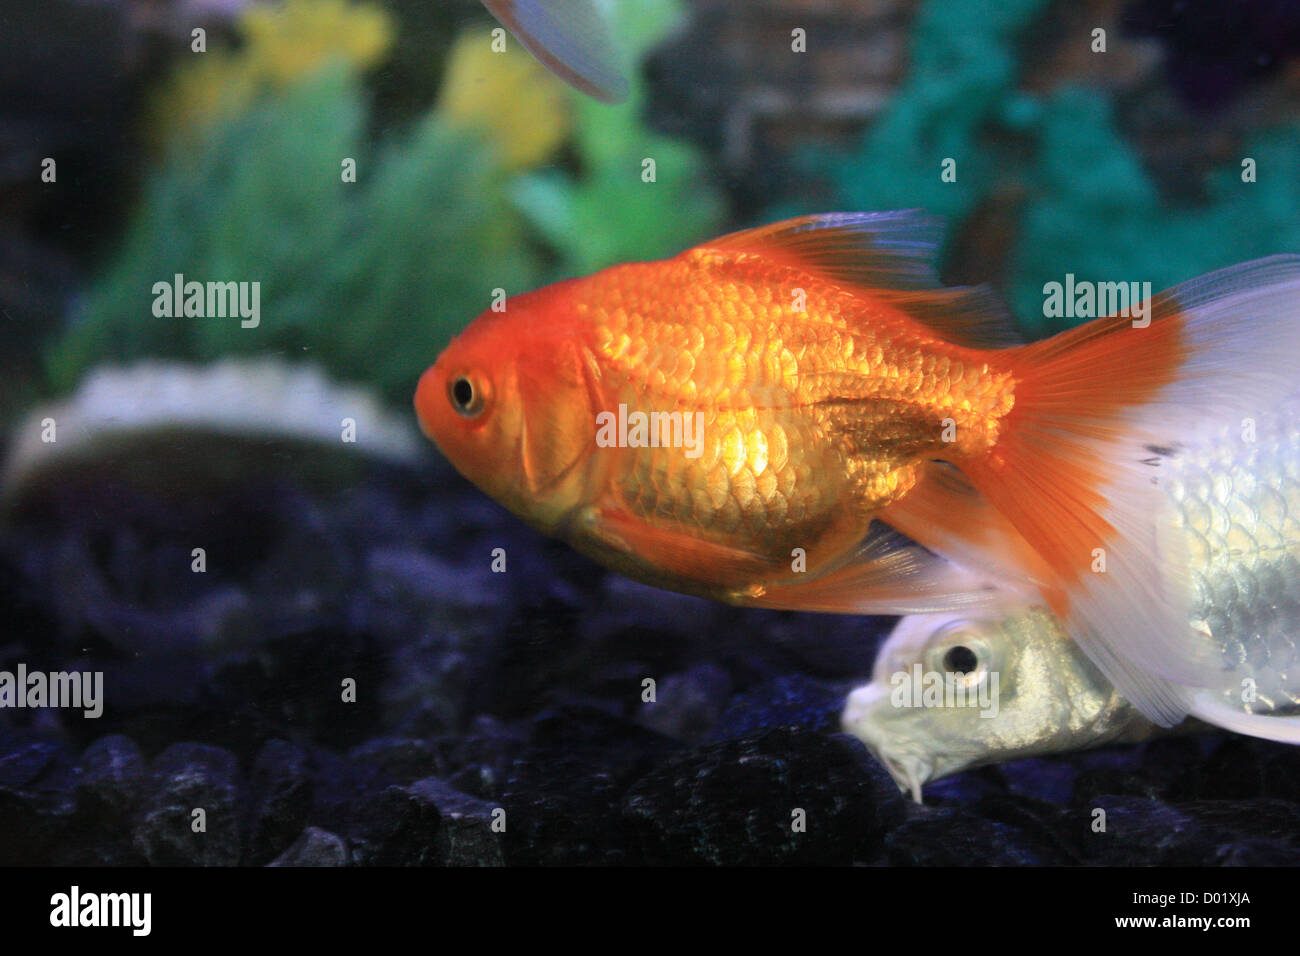 freshwater fish aquarium fish tropical fish pictures of fish fish tanks fish for sale all about fish salt water fish che